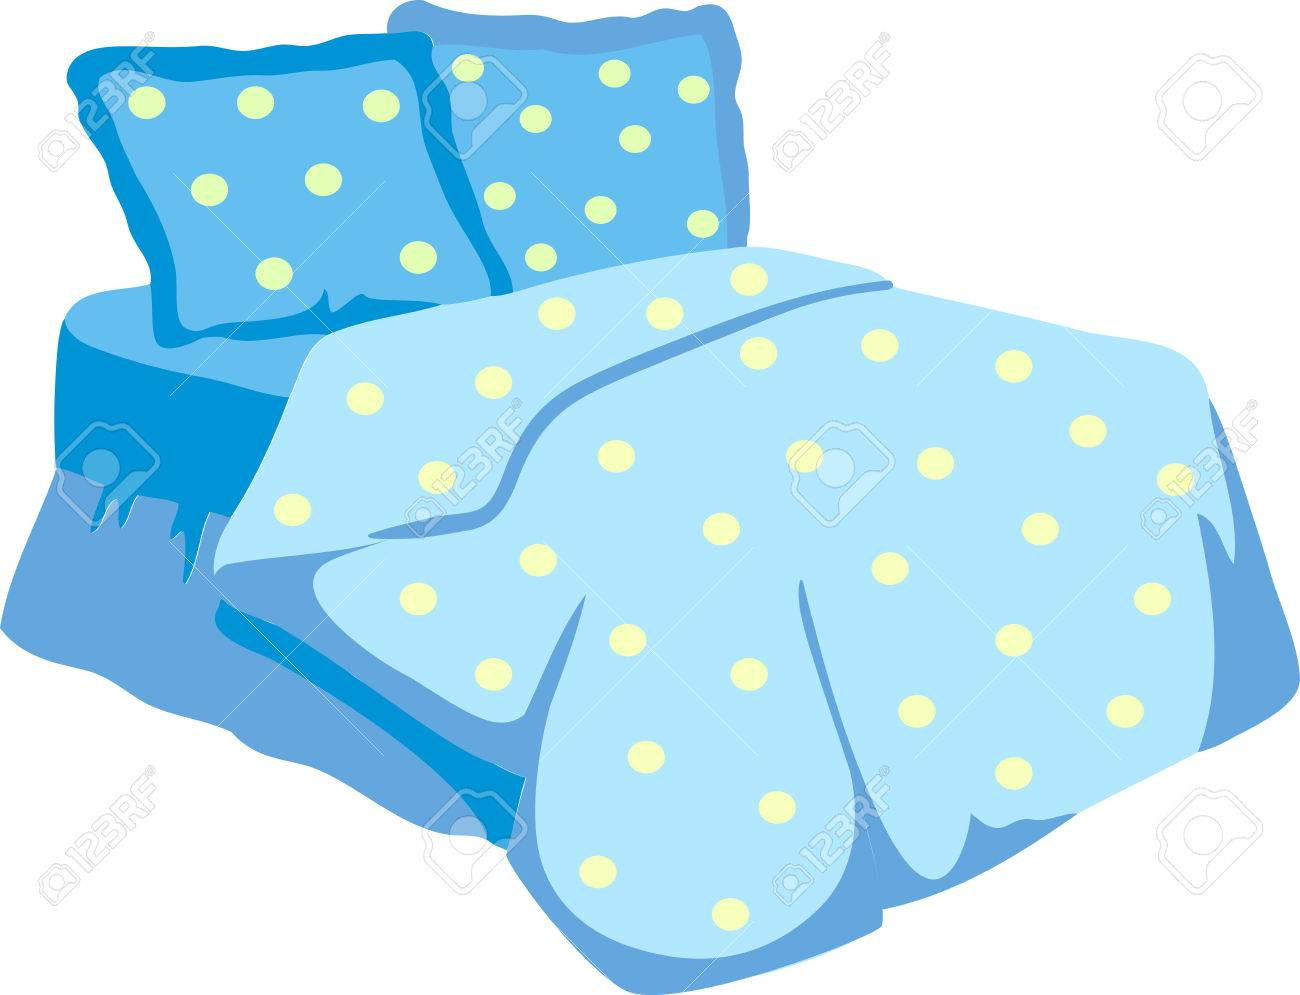 Clipart bed blanket jpg library stock Bedroom clipart blanket pillow - 196 transparent clip arts, images ... jpg library stock